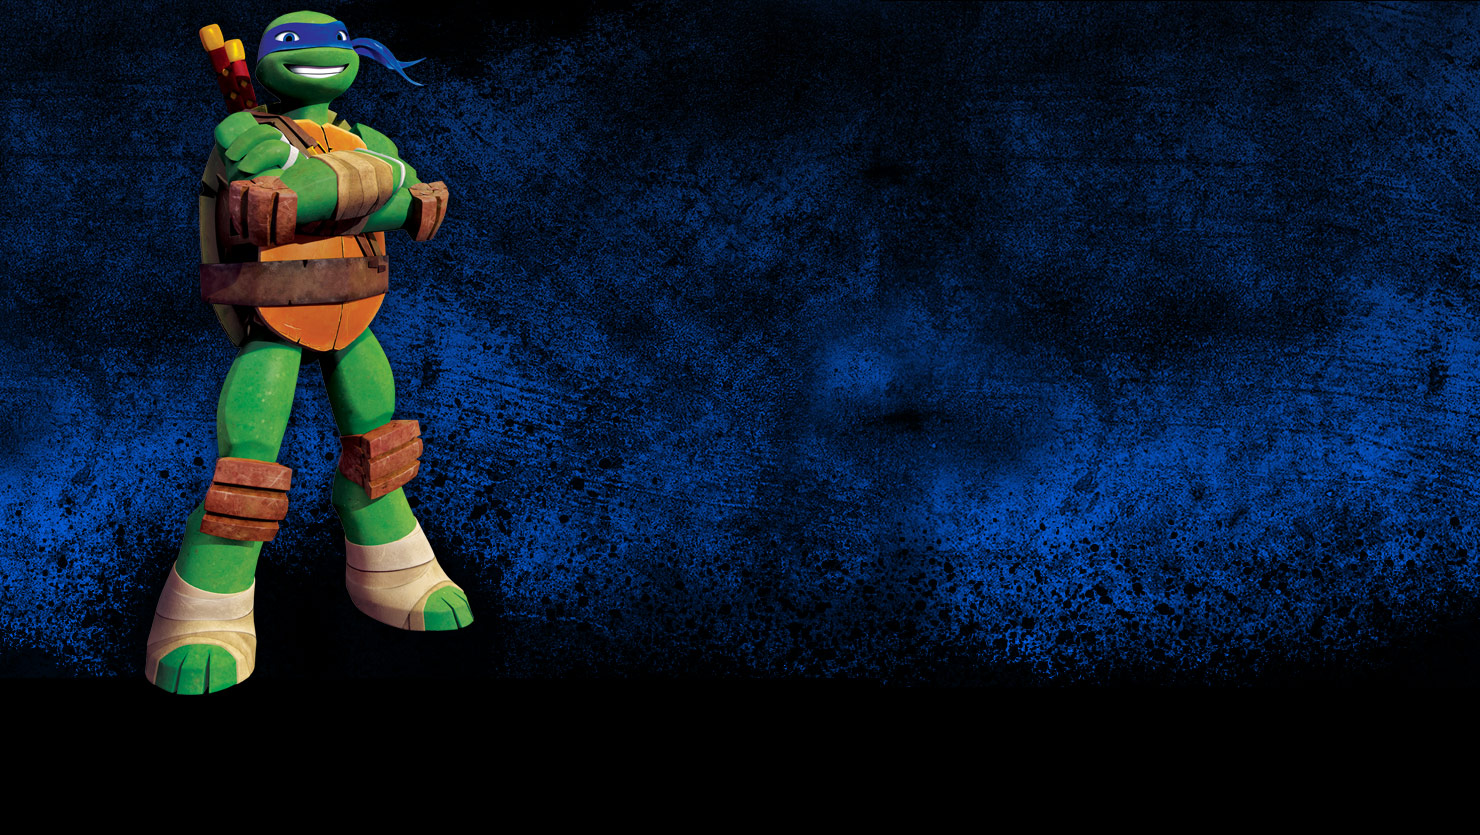 Nickelodeon teenage mutant ninja turtles wallpaper